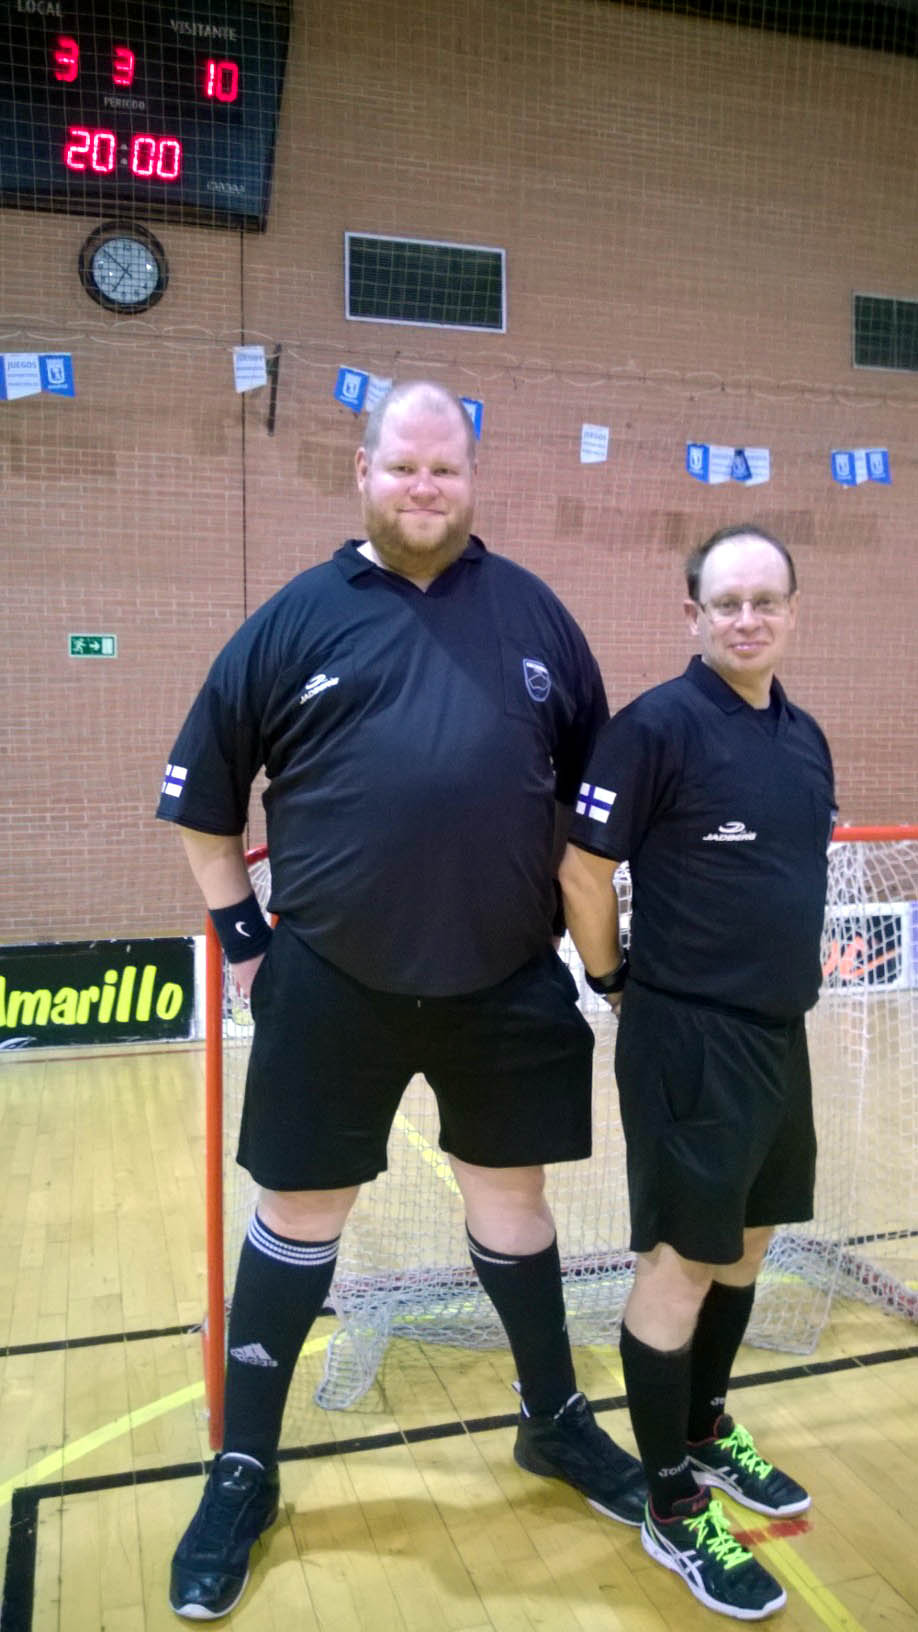 Finnish referees